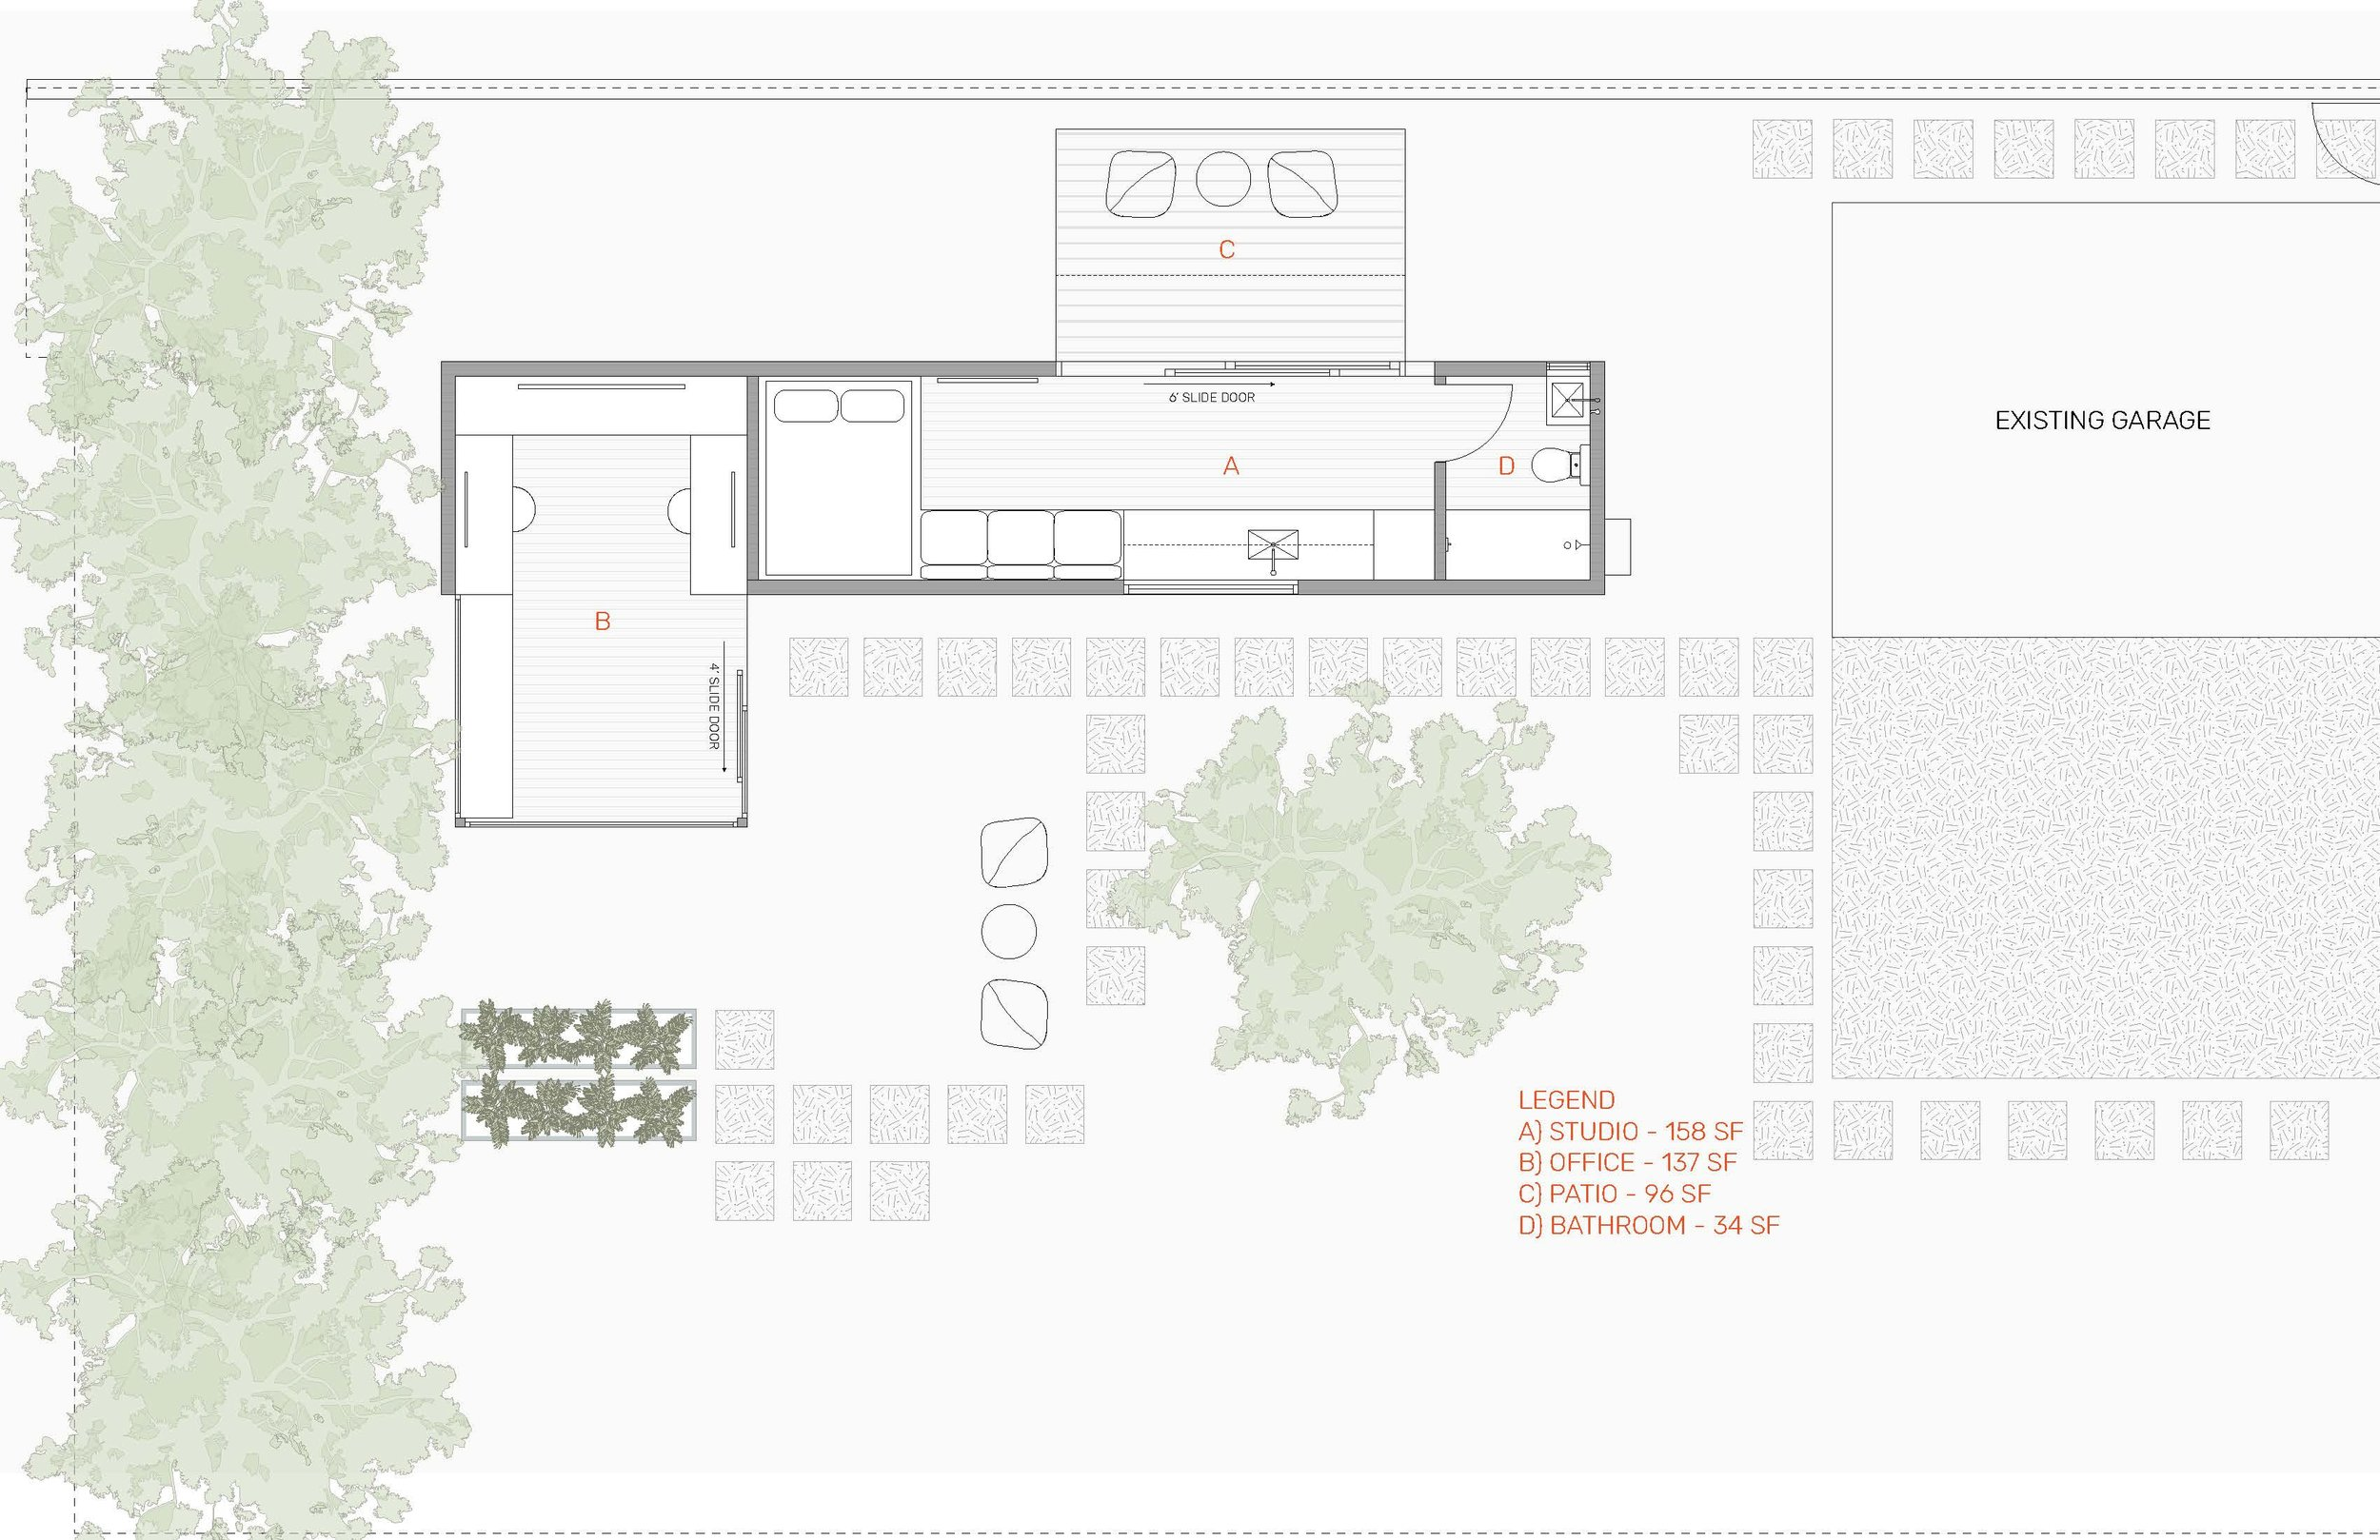 2.15.19 adu - floor plan.jpg